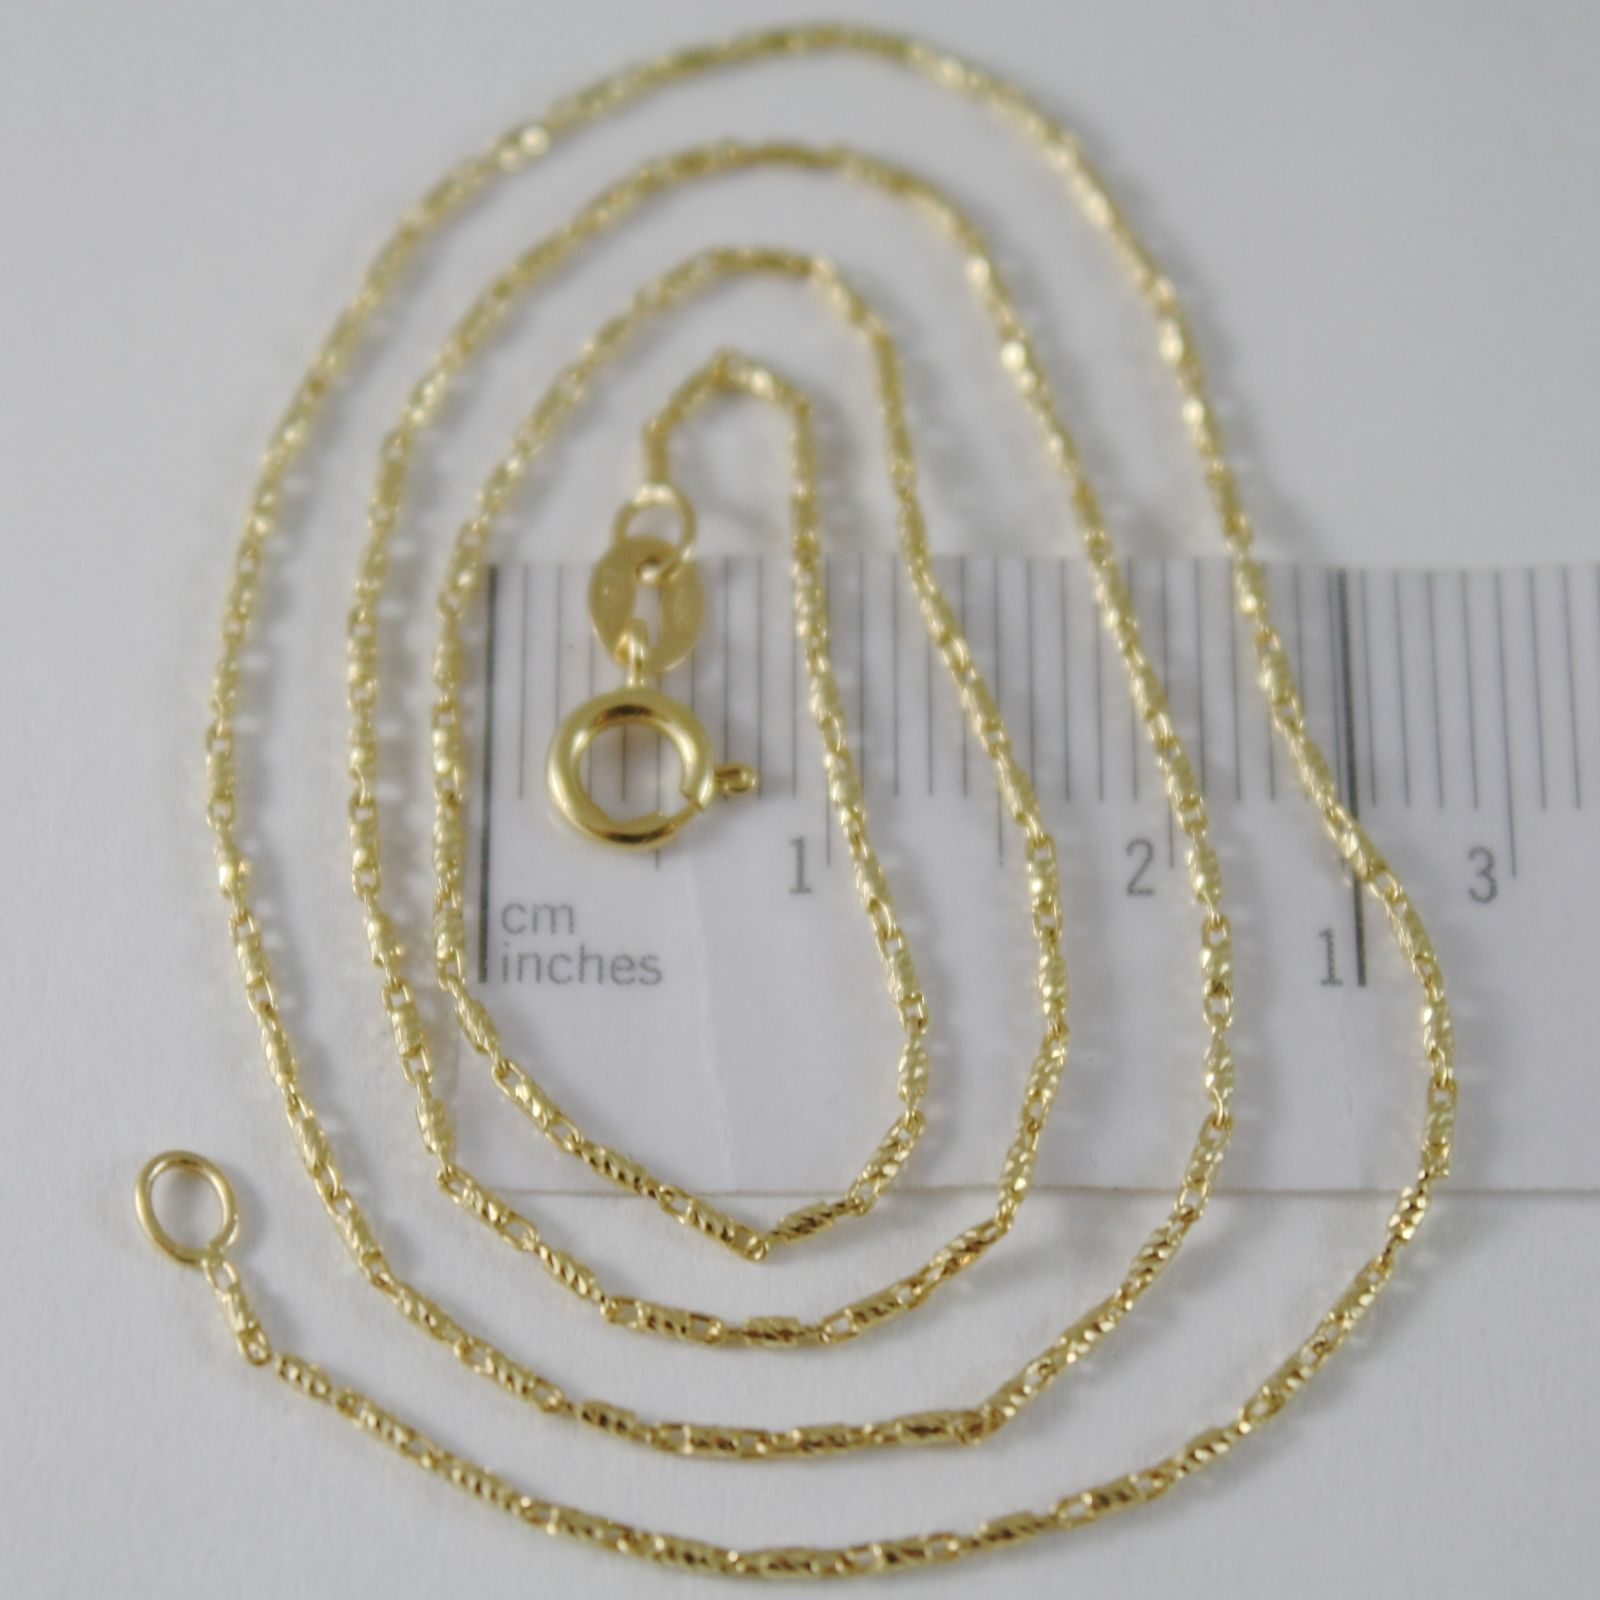 SOLID 18K YELLOW GOLD FINELY WORKED TUBE CHAIN 18 INCHES, 1 MM, MADE IN ITALY